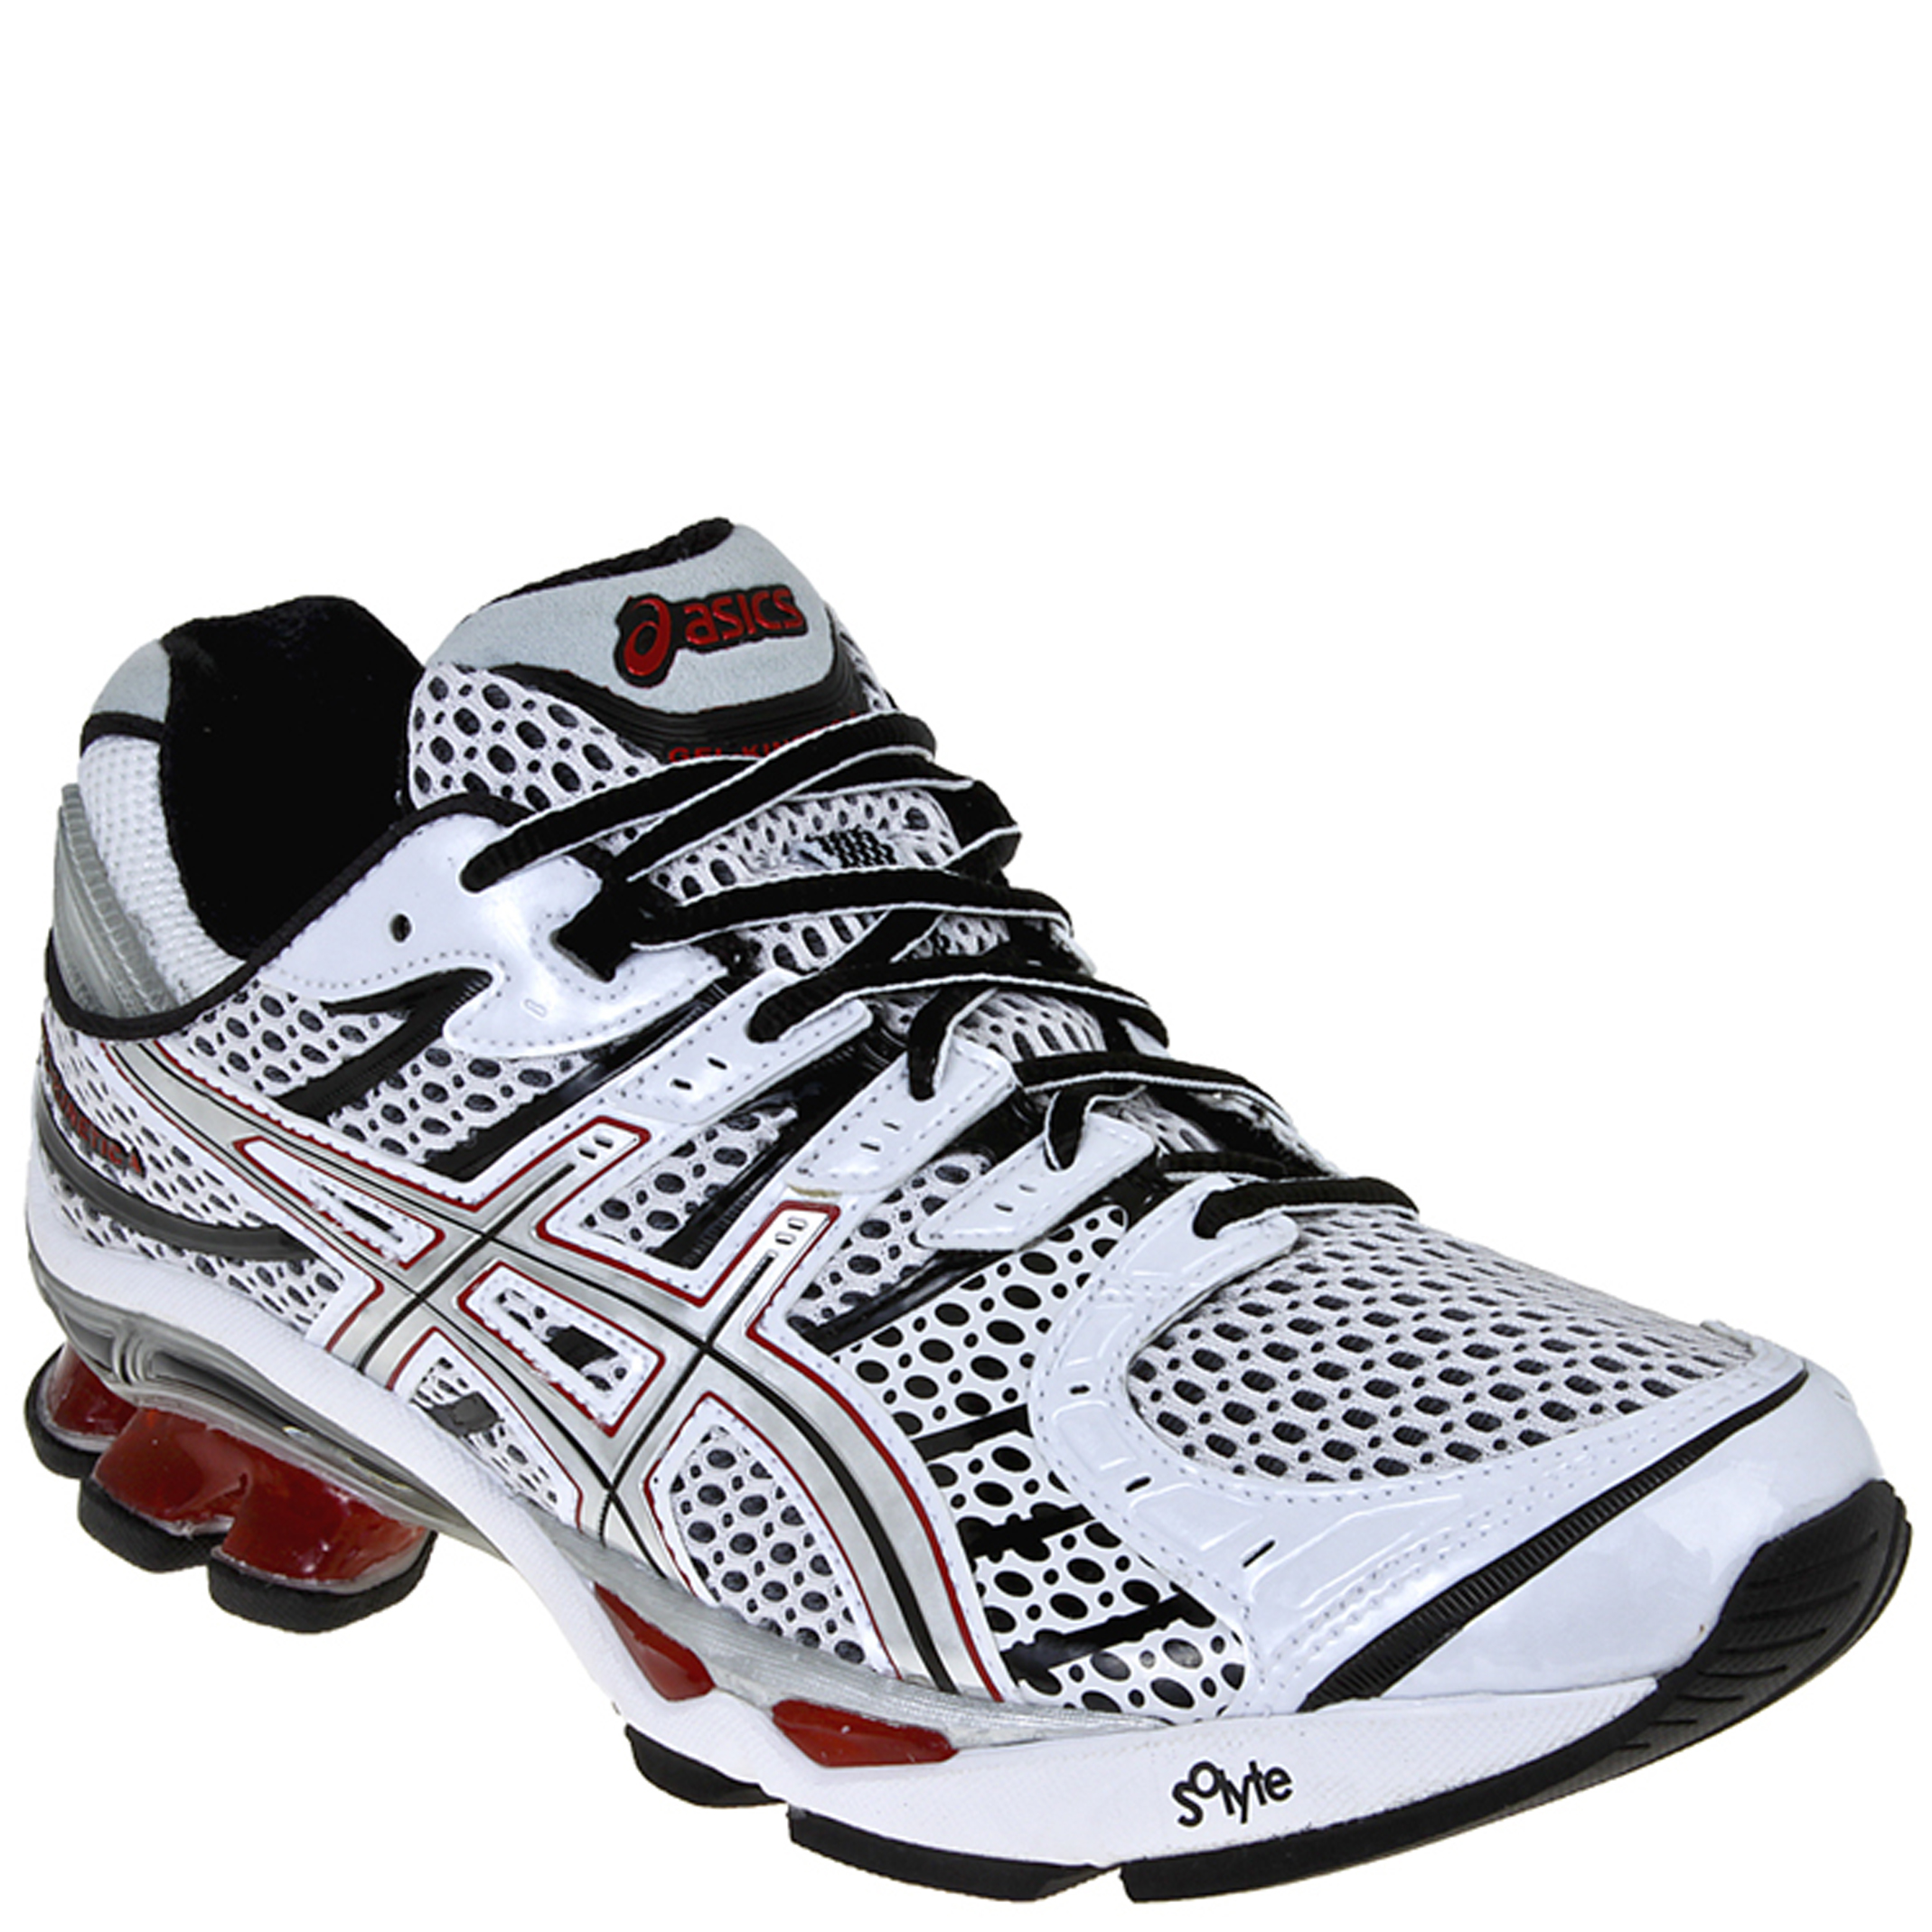 235eb30033e World Tennis - TENIS ASICS GEL KINETIC 4 - R 499.99 - World Tennis ...